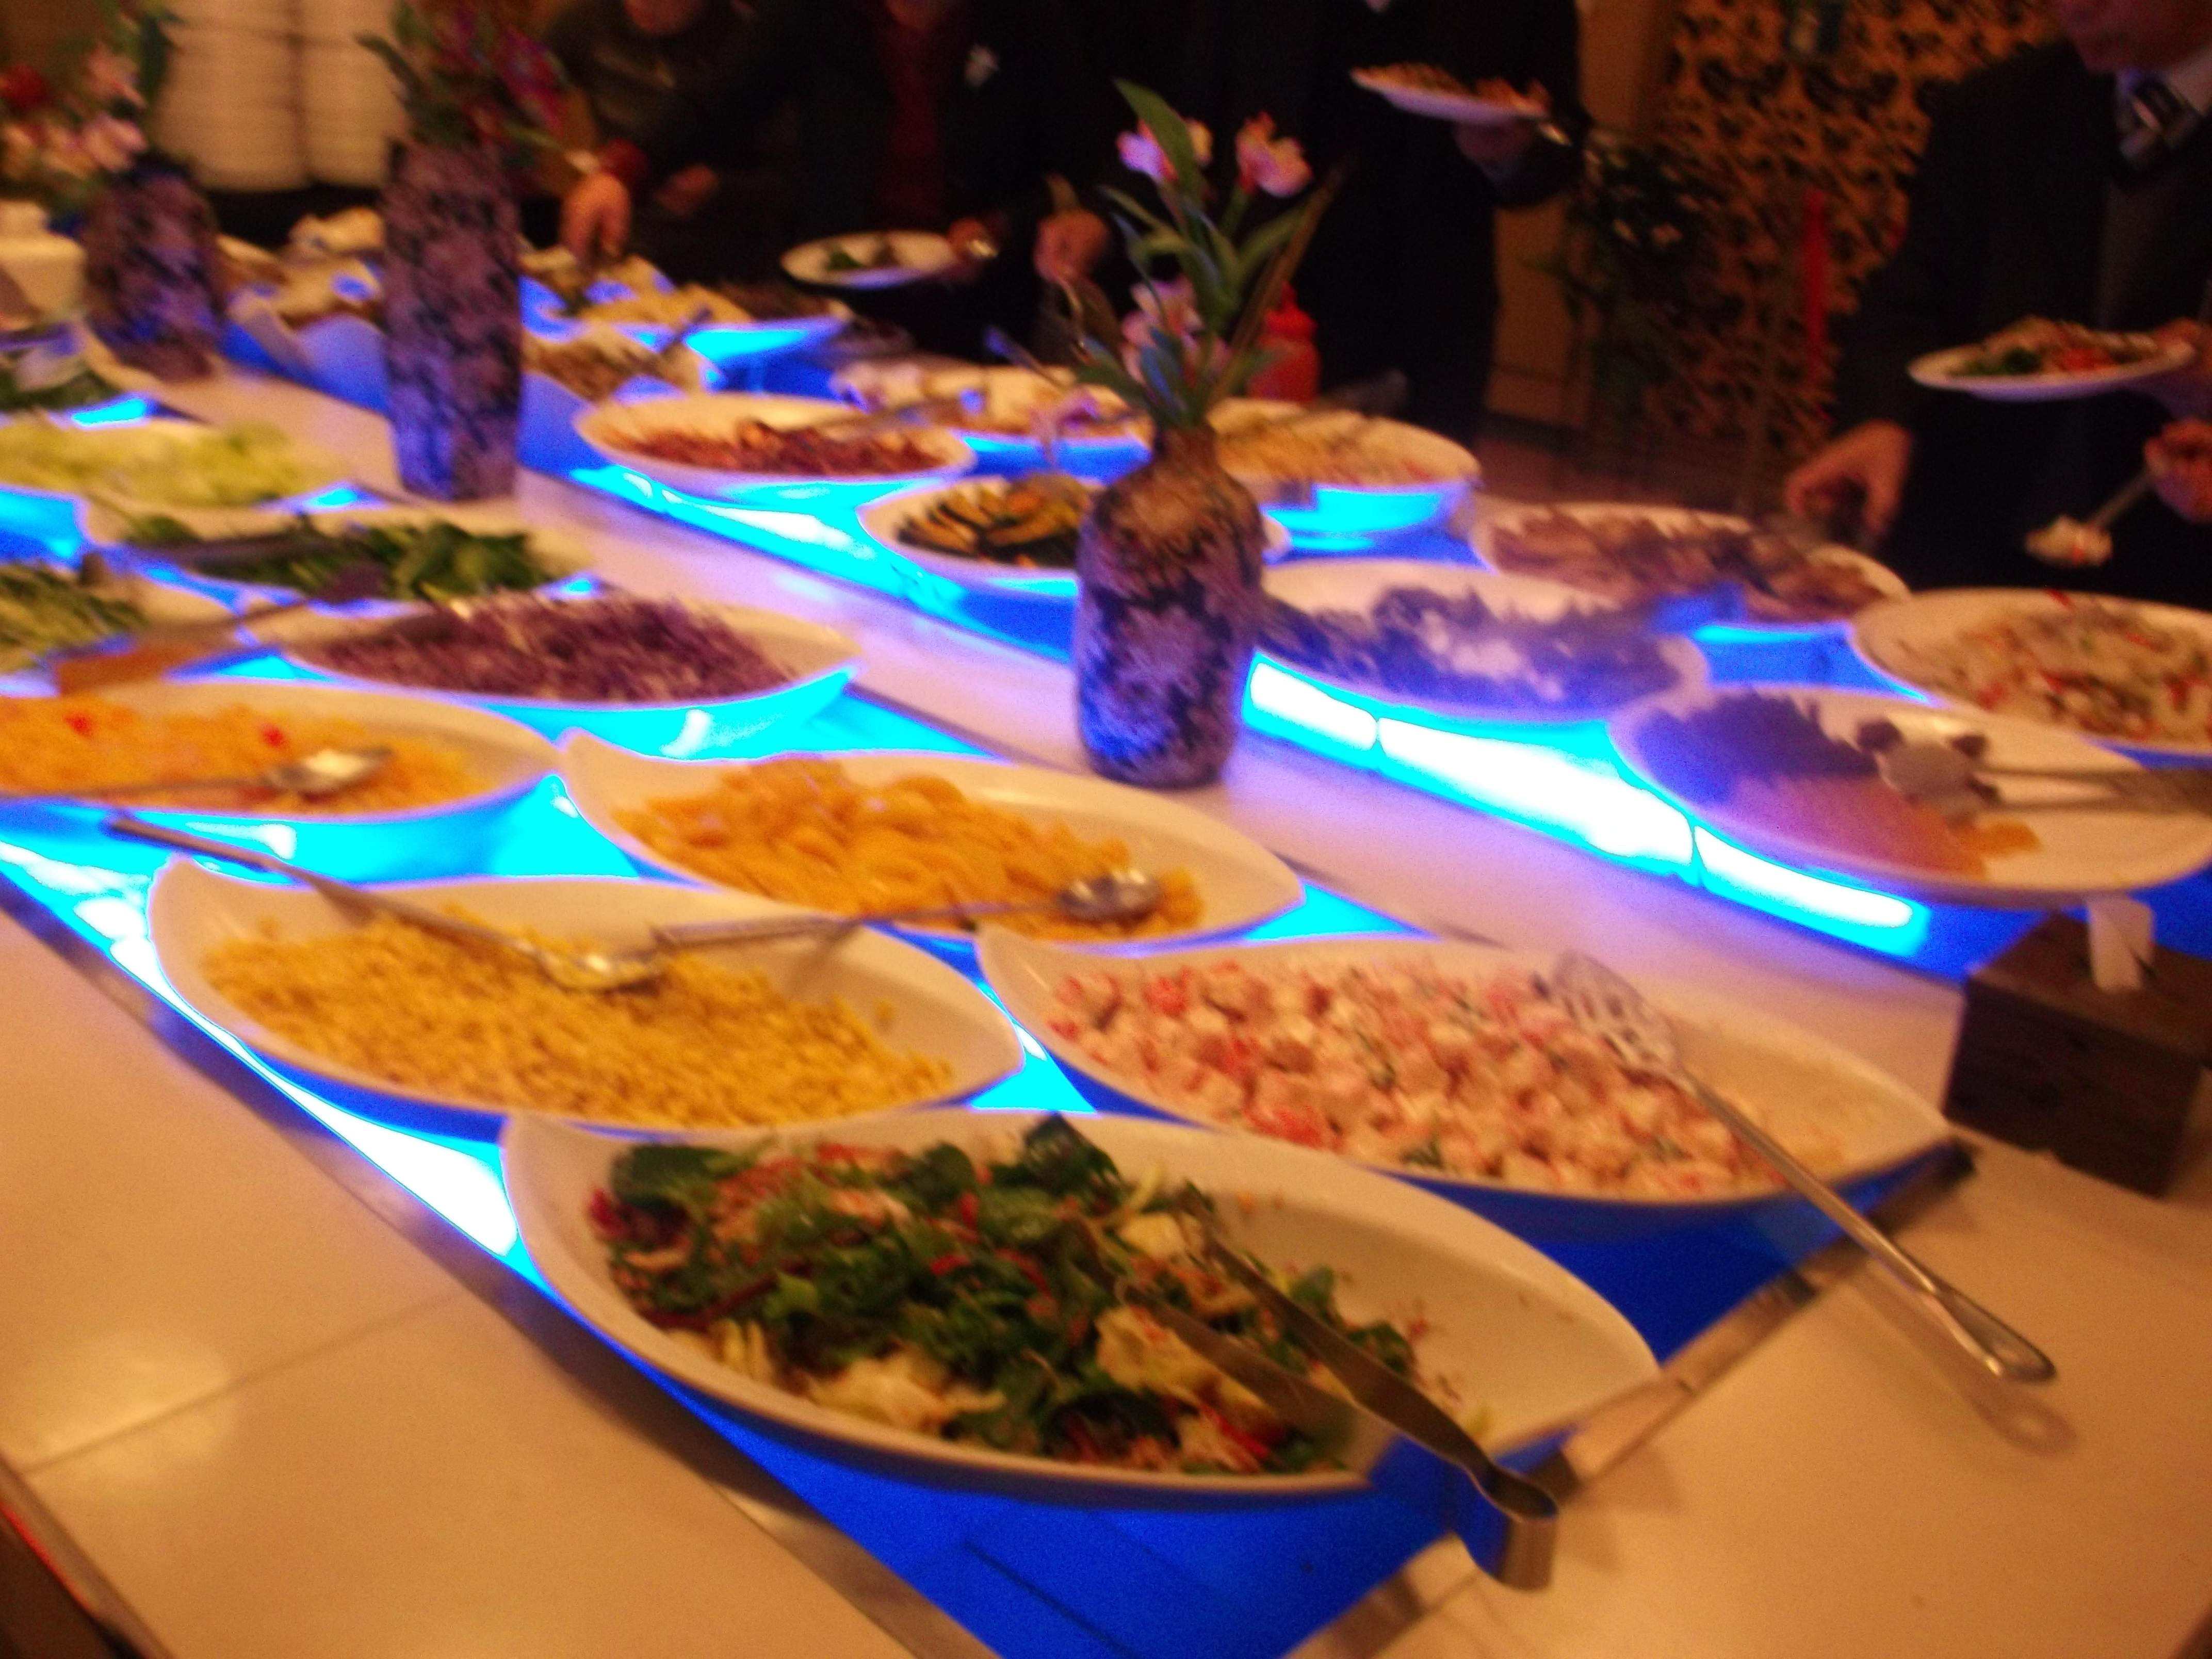 So Less Than An Hour Later We Were In There Filling Our Plates With Food Not The Bride And Groom Wanted To Serve Just